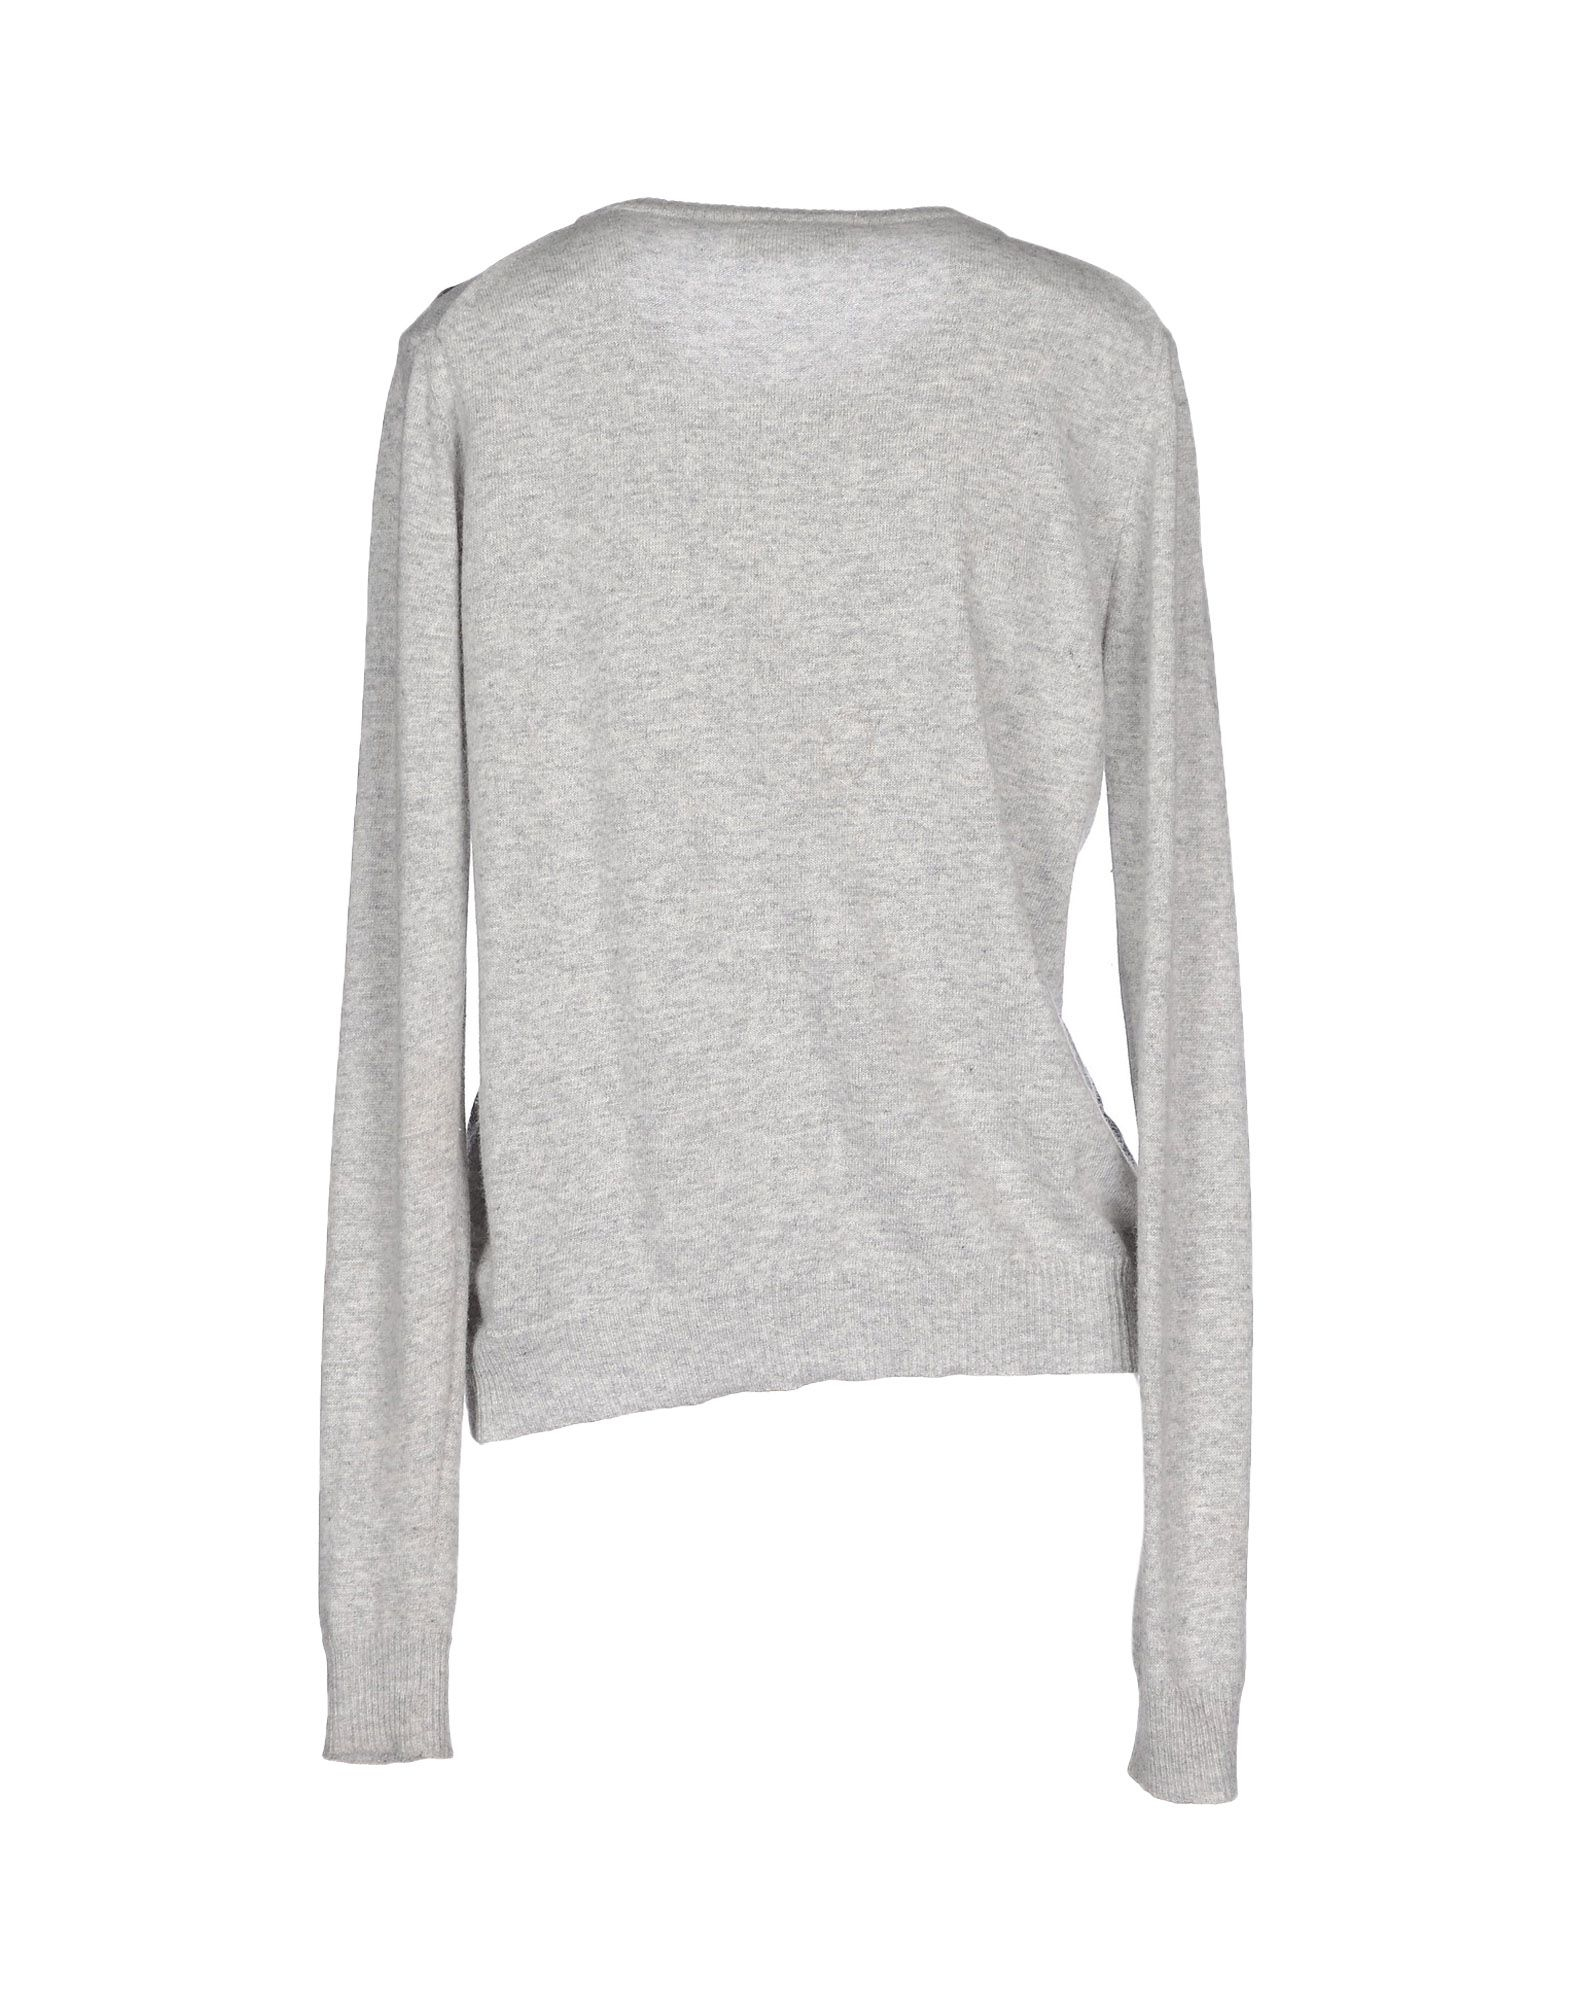 KNITWEAR - Jumpers The Textile Rebels Original Cheap Online Discount Low Price Fee Shipping Wide Range Of Sale Online Sale Cheapest Price qNHlI